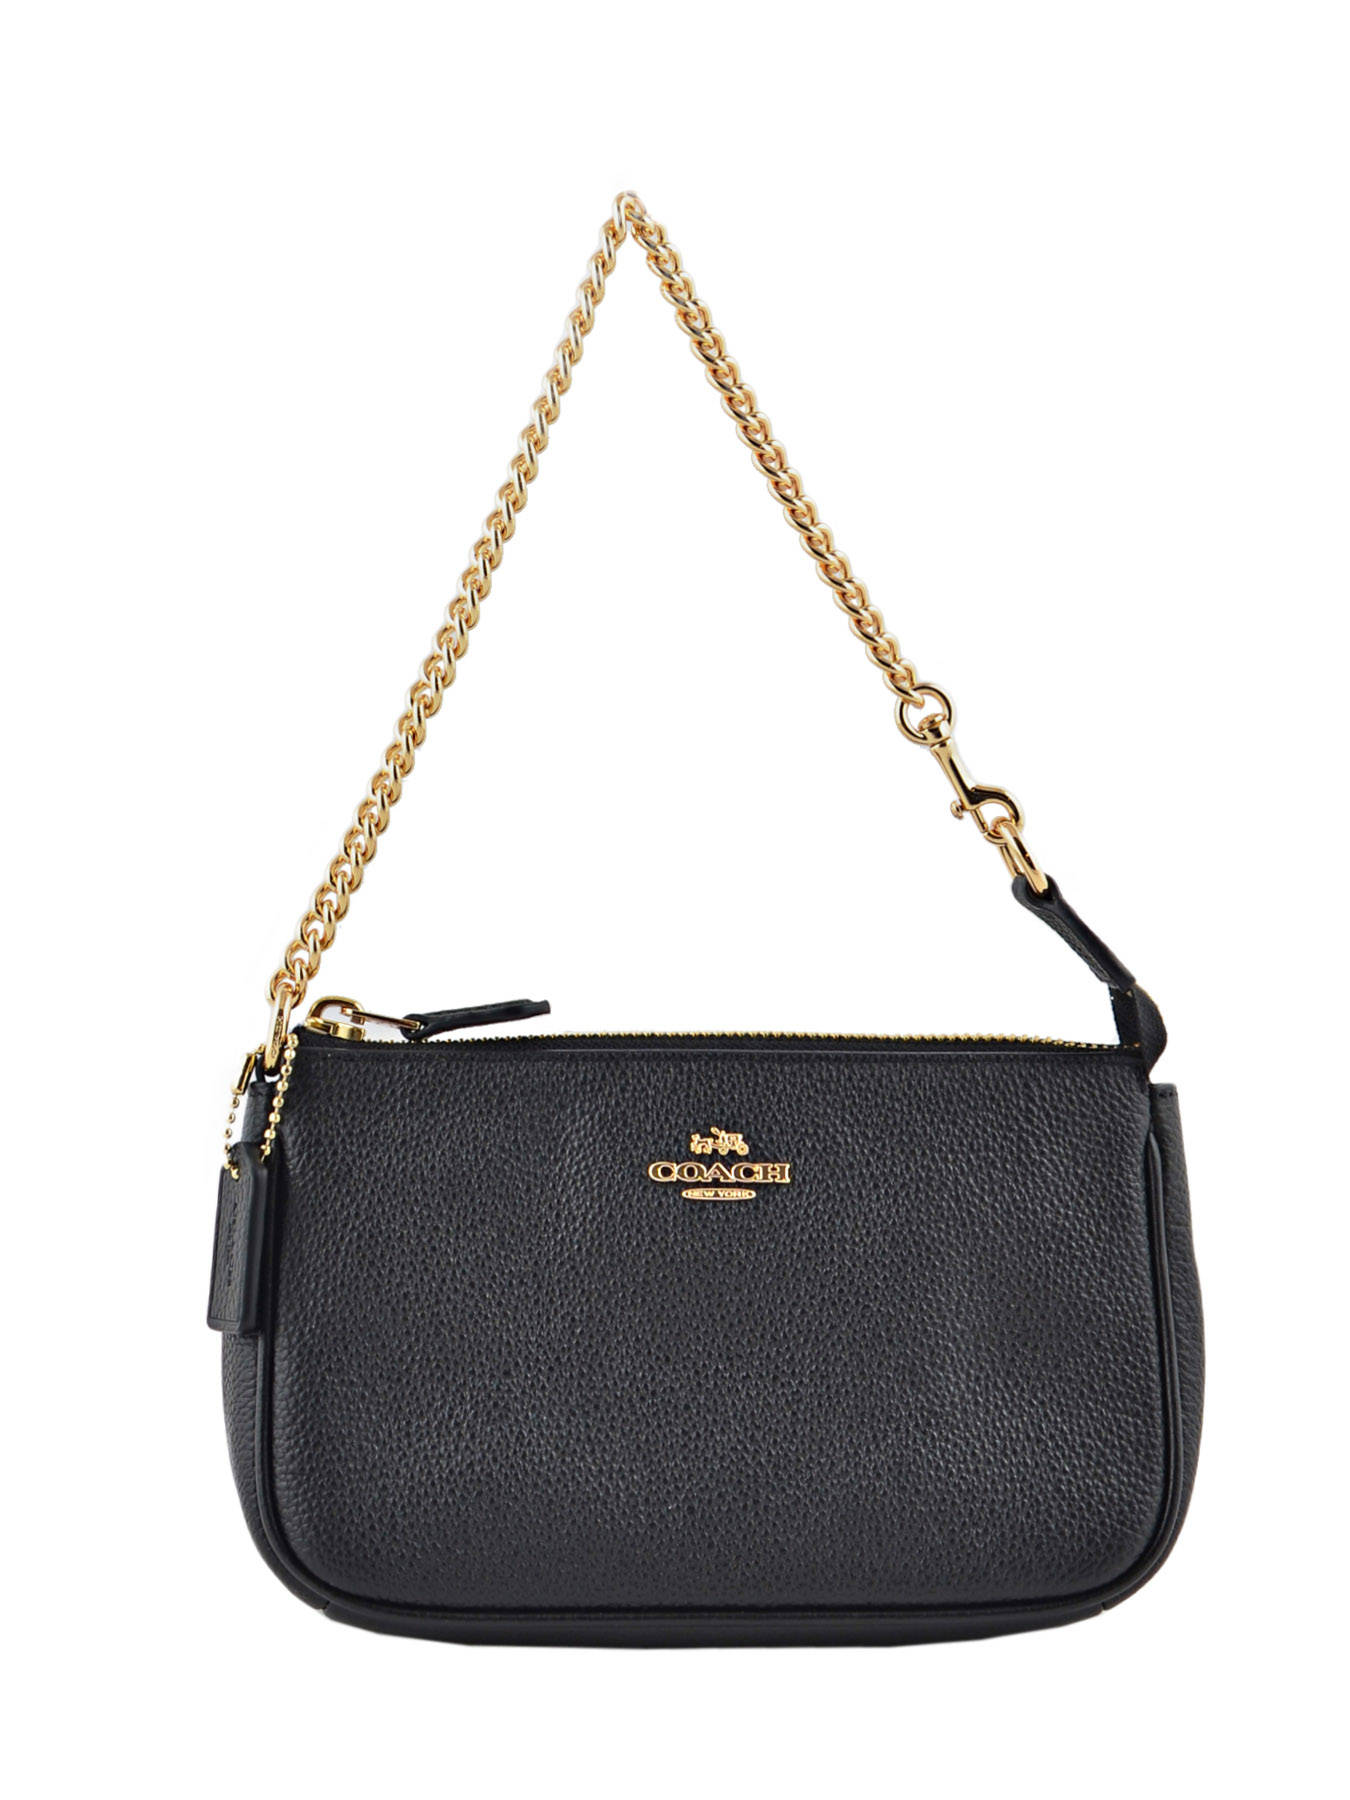 Coach Bag Casual Best Prices